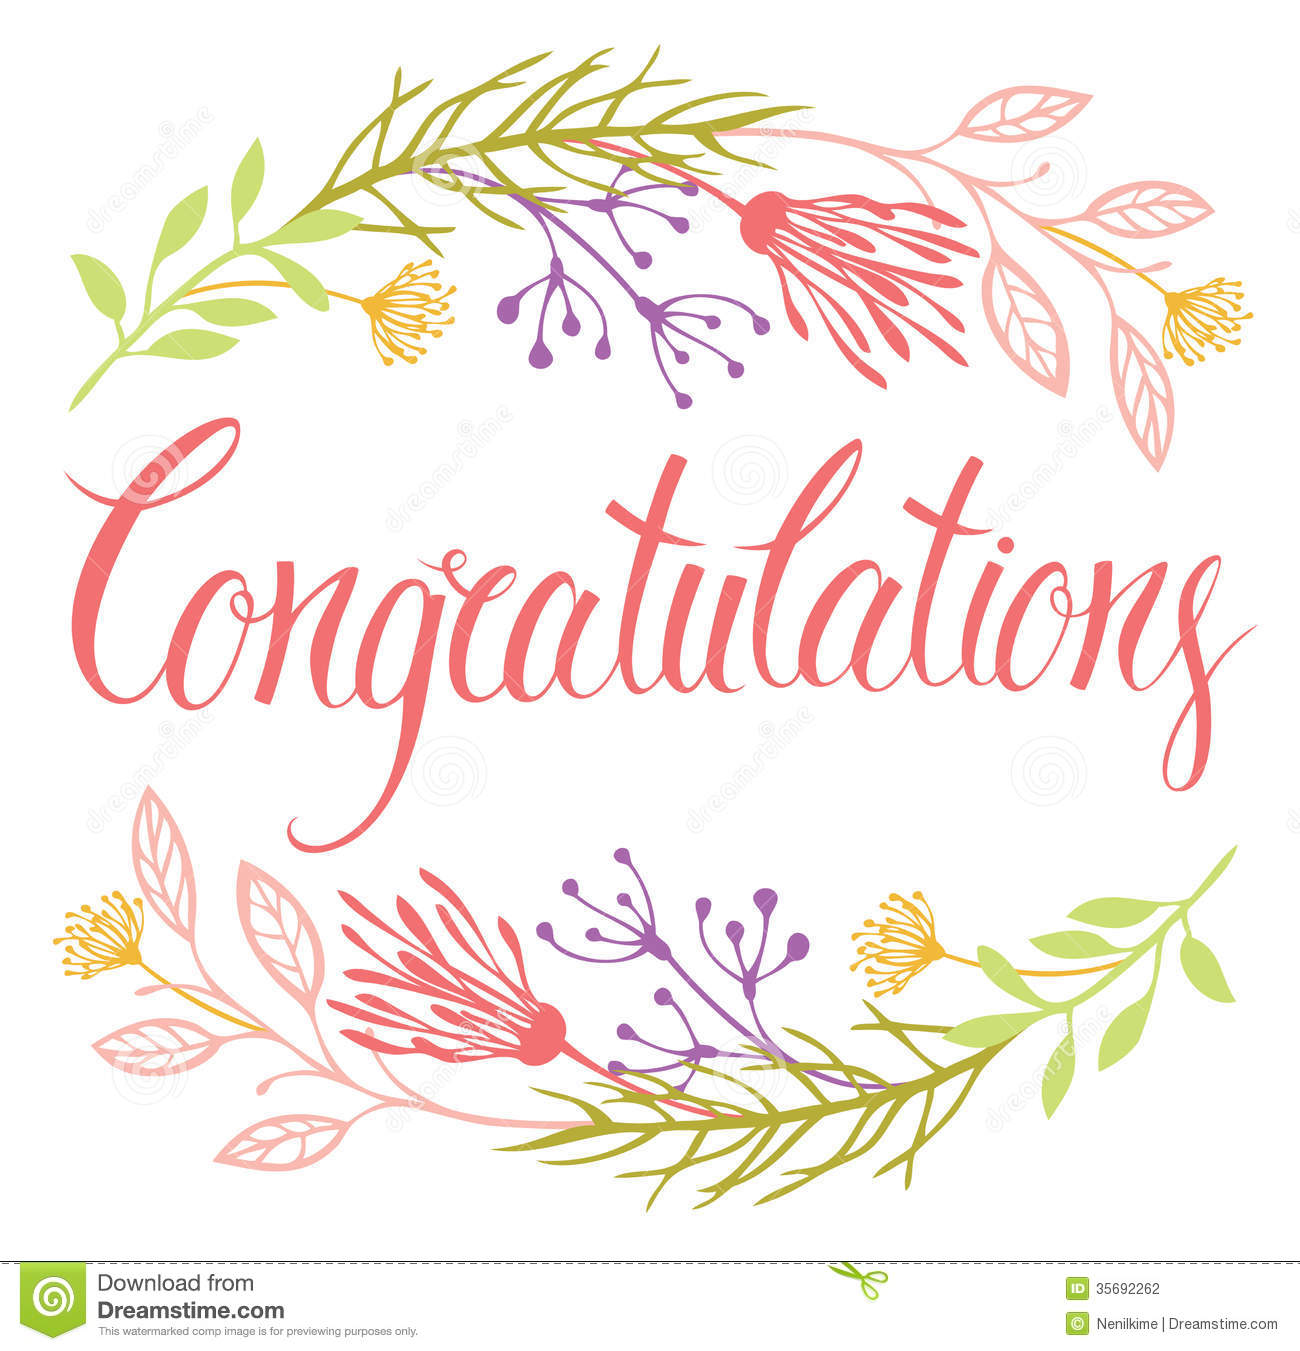 Congratulations Greeting Card Clipart - Clipart Kid